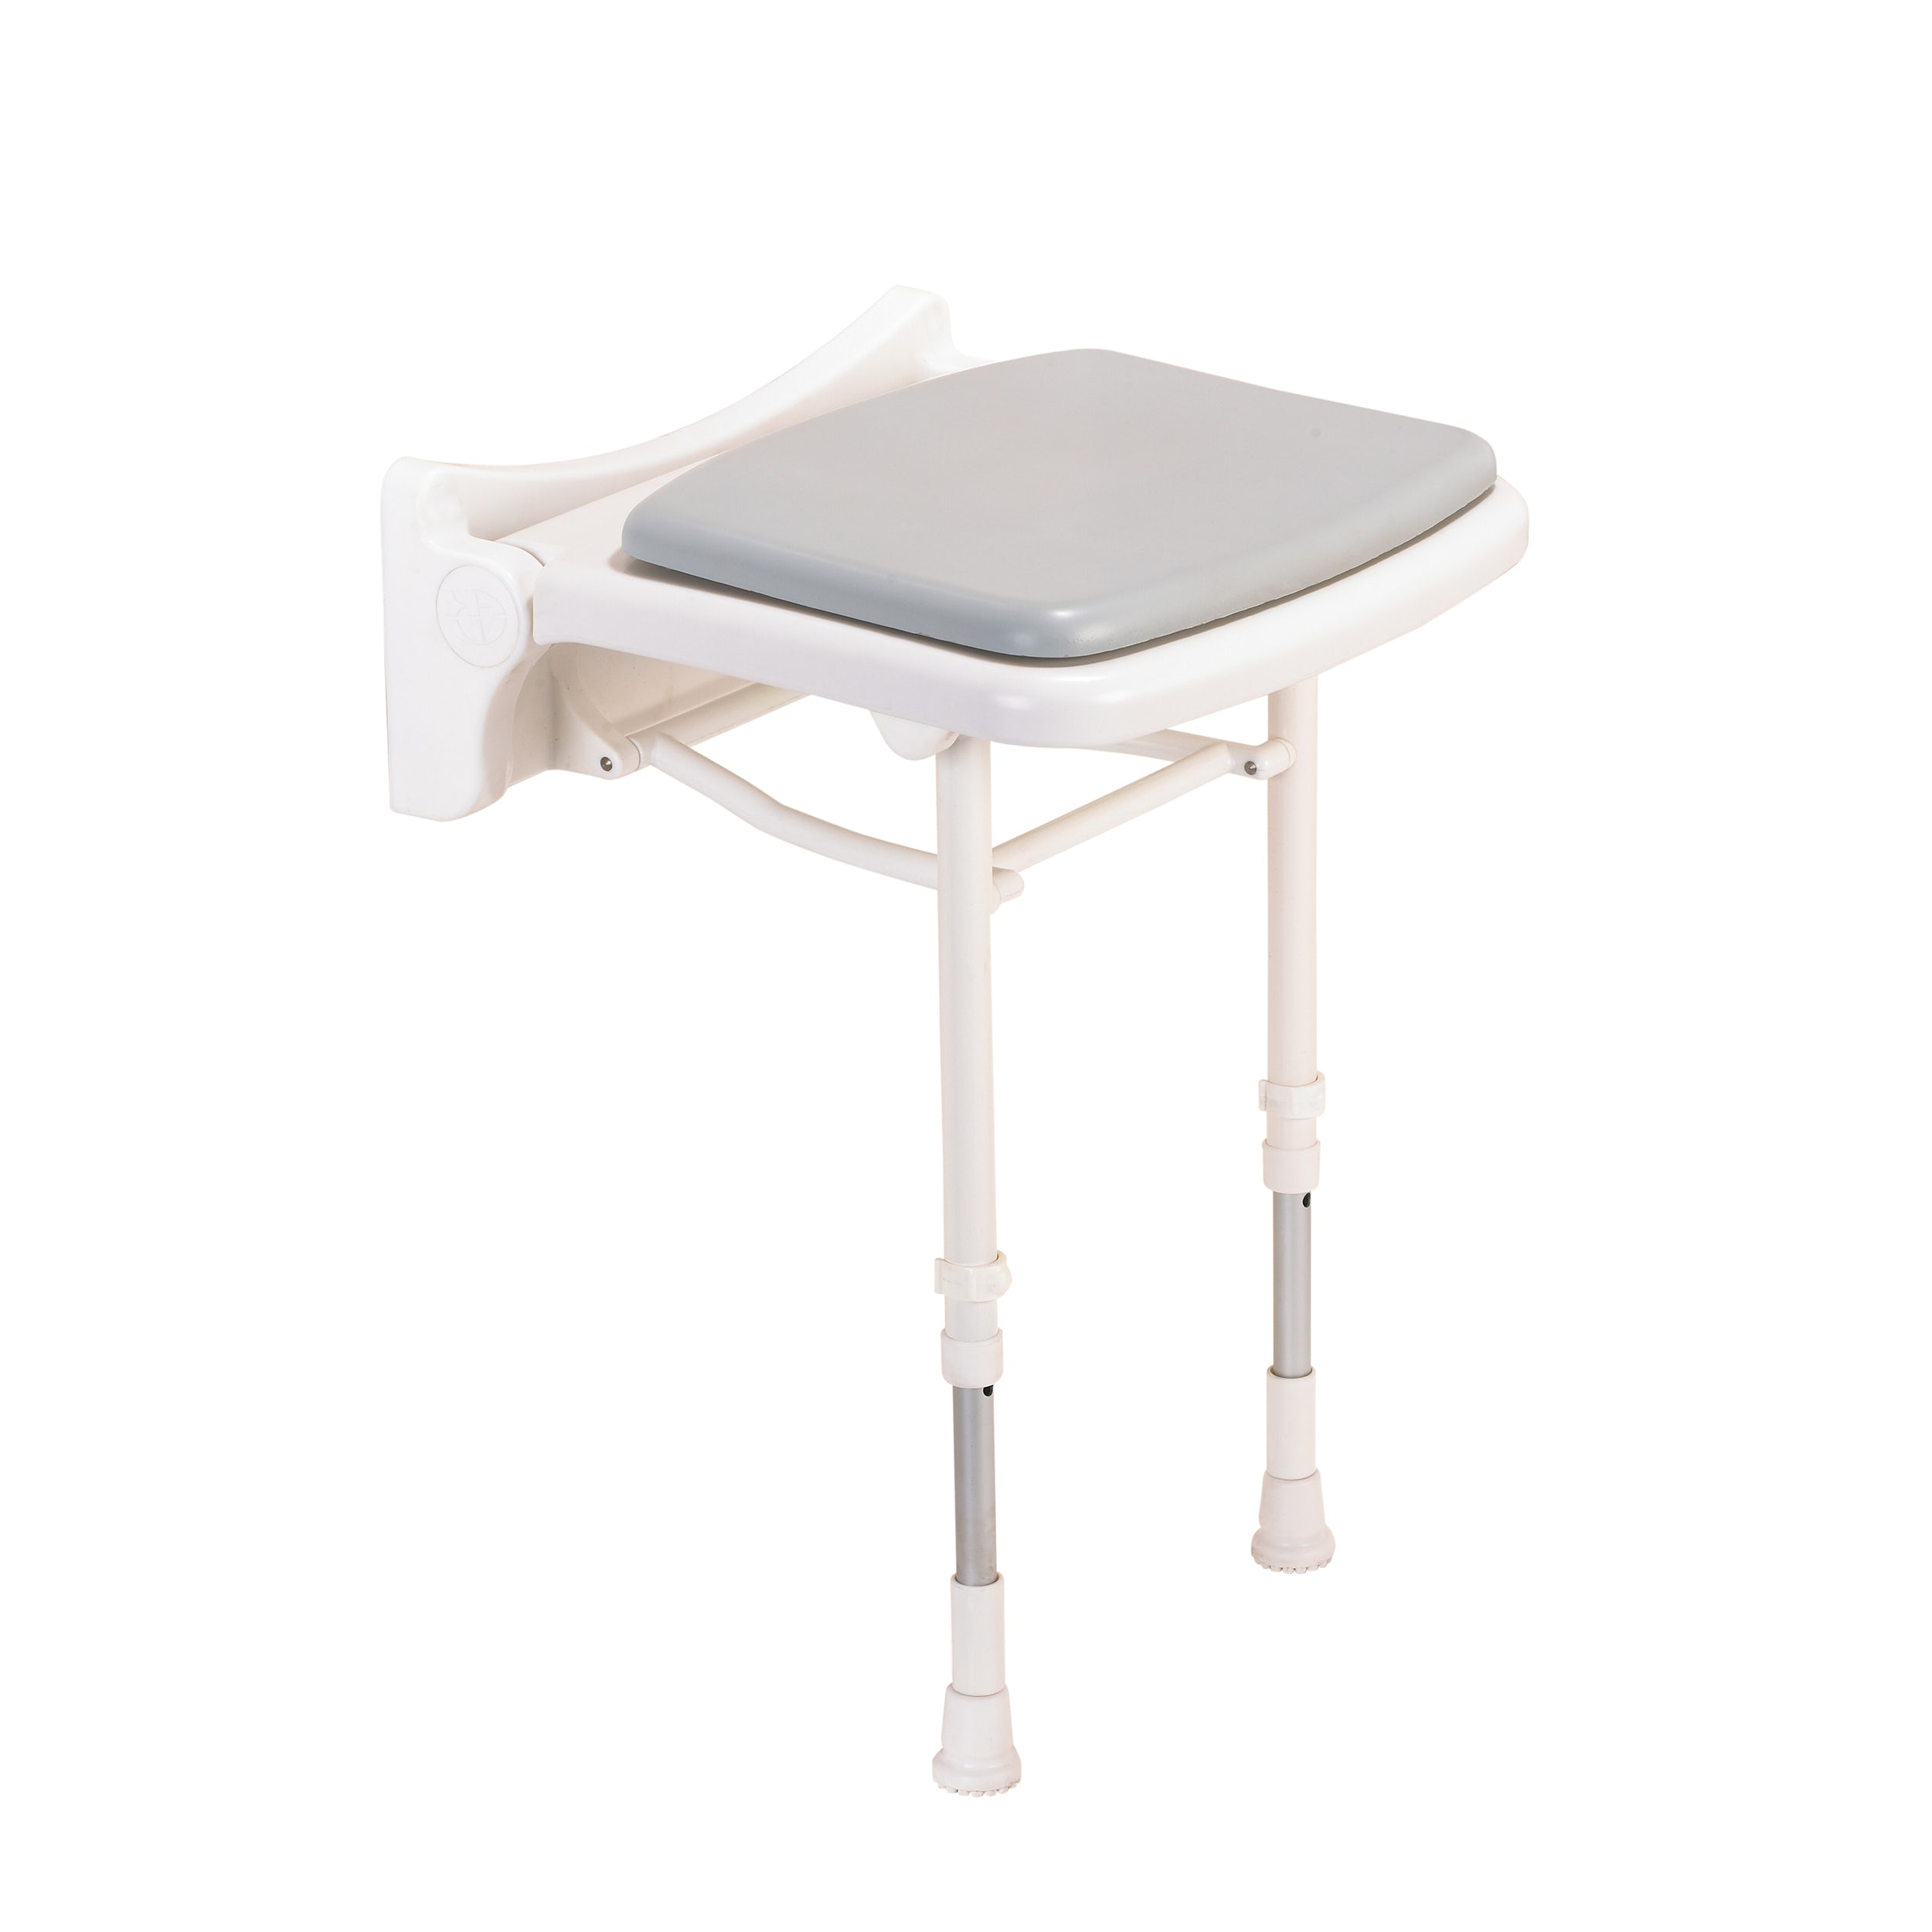 AKW 2000 series standard folding shower seat with grey pad